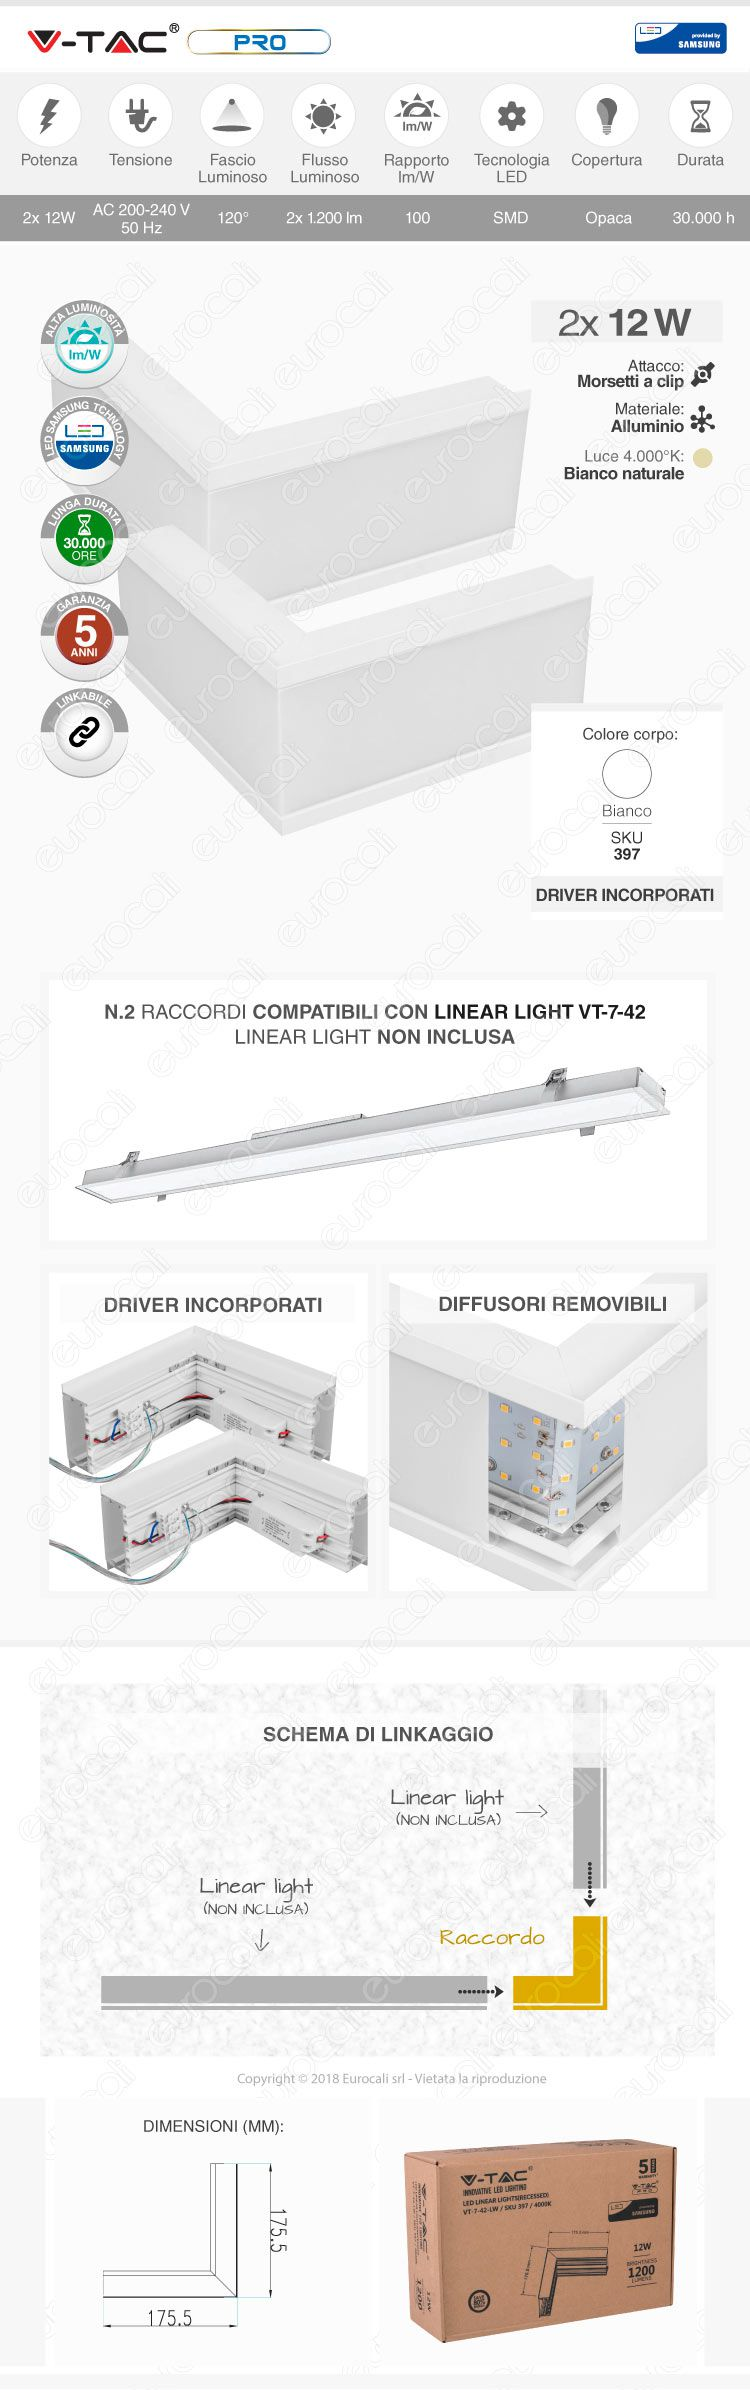 V-Tac PRO VT-7-42LW Coppia di Lampade LED Raccordo a Incasso Linear Light 12W Chip Samsung White Body